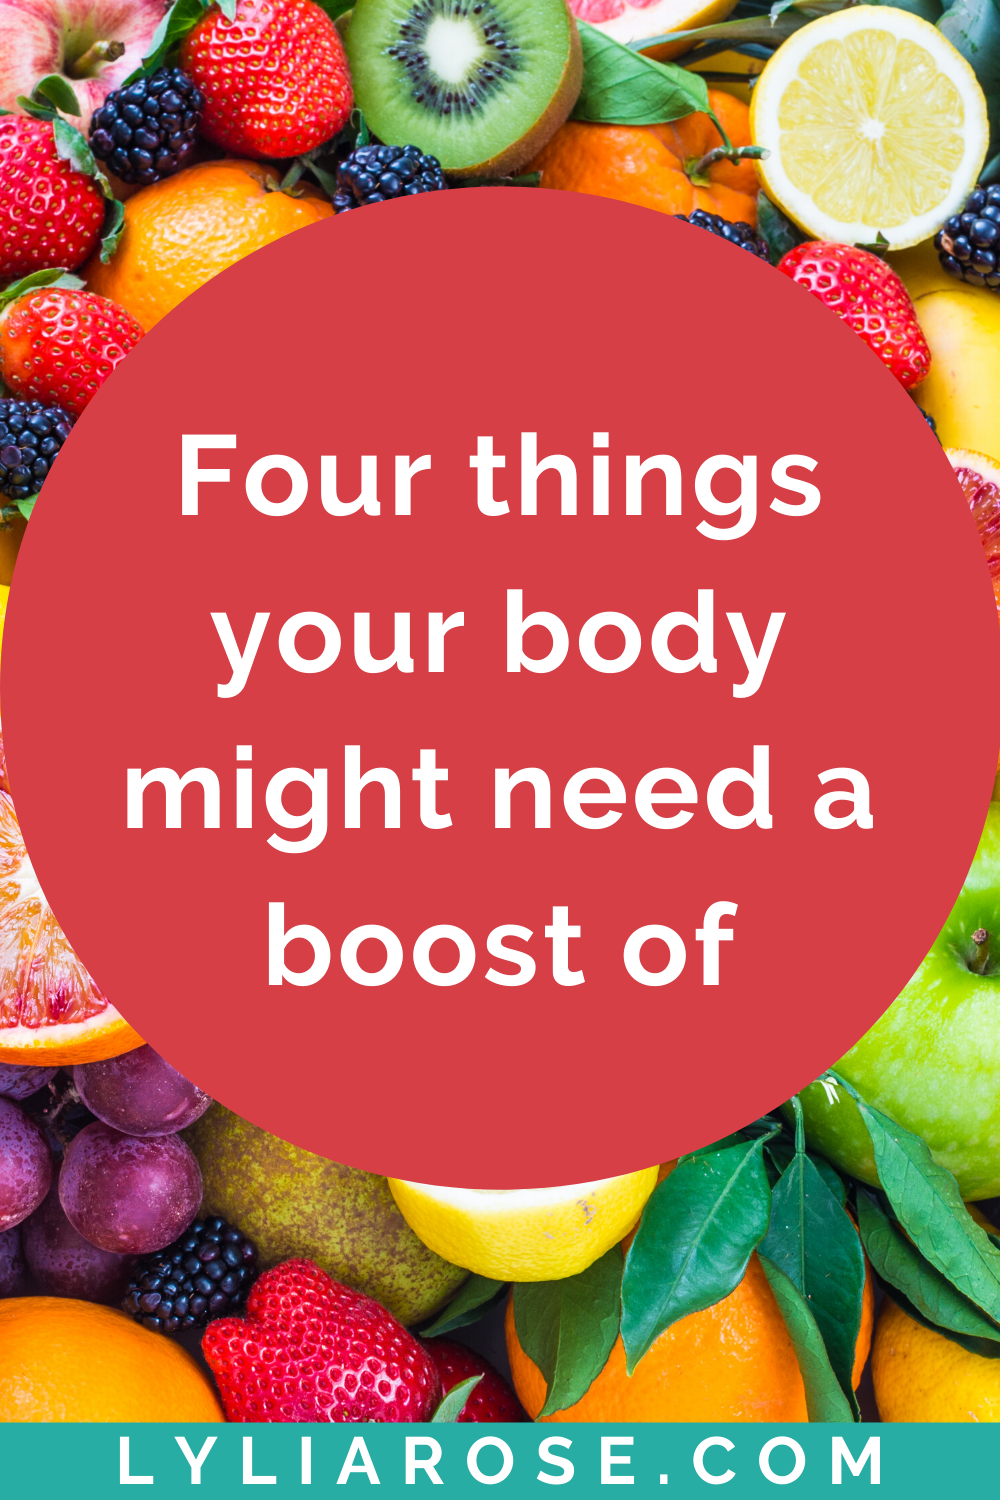 Four things your body might need a boost of (1)